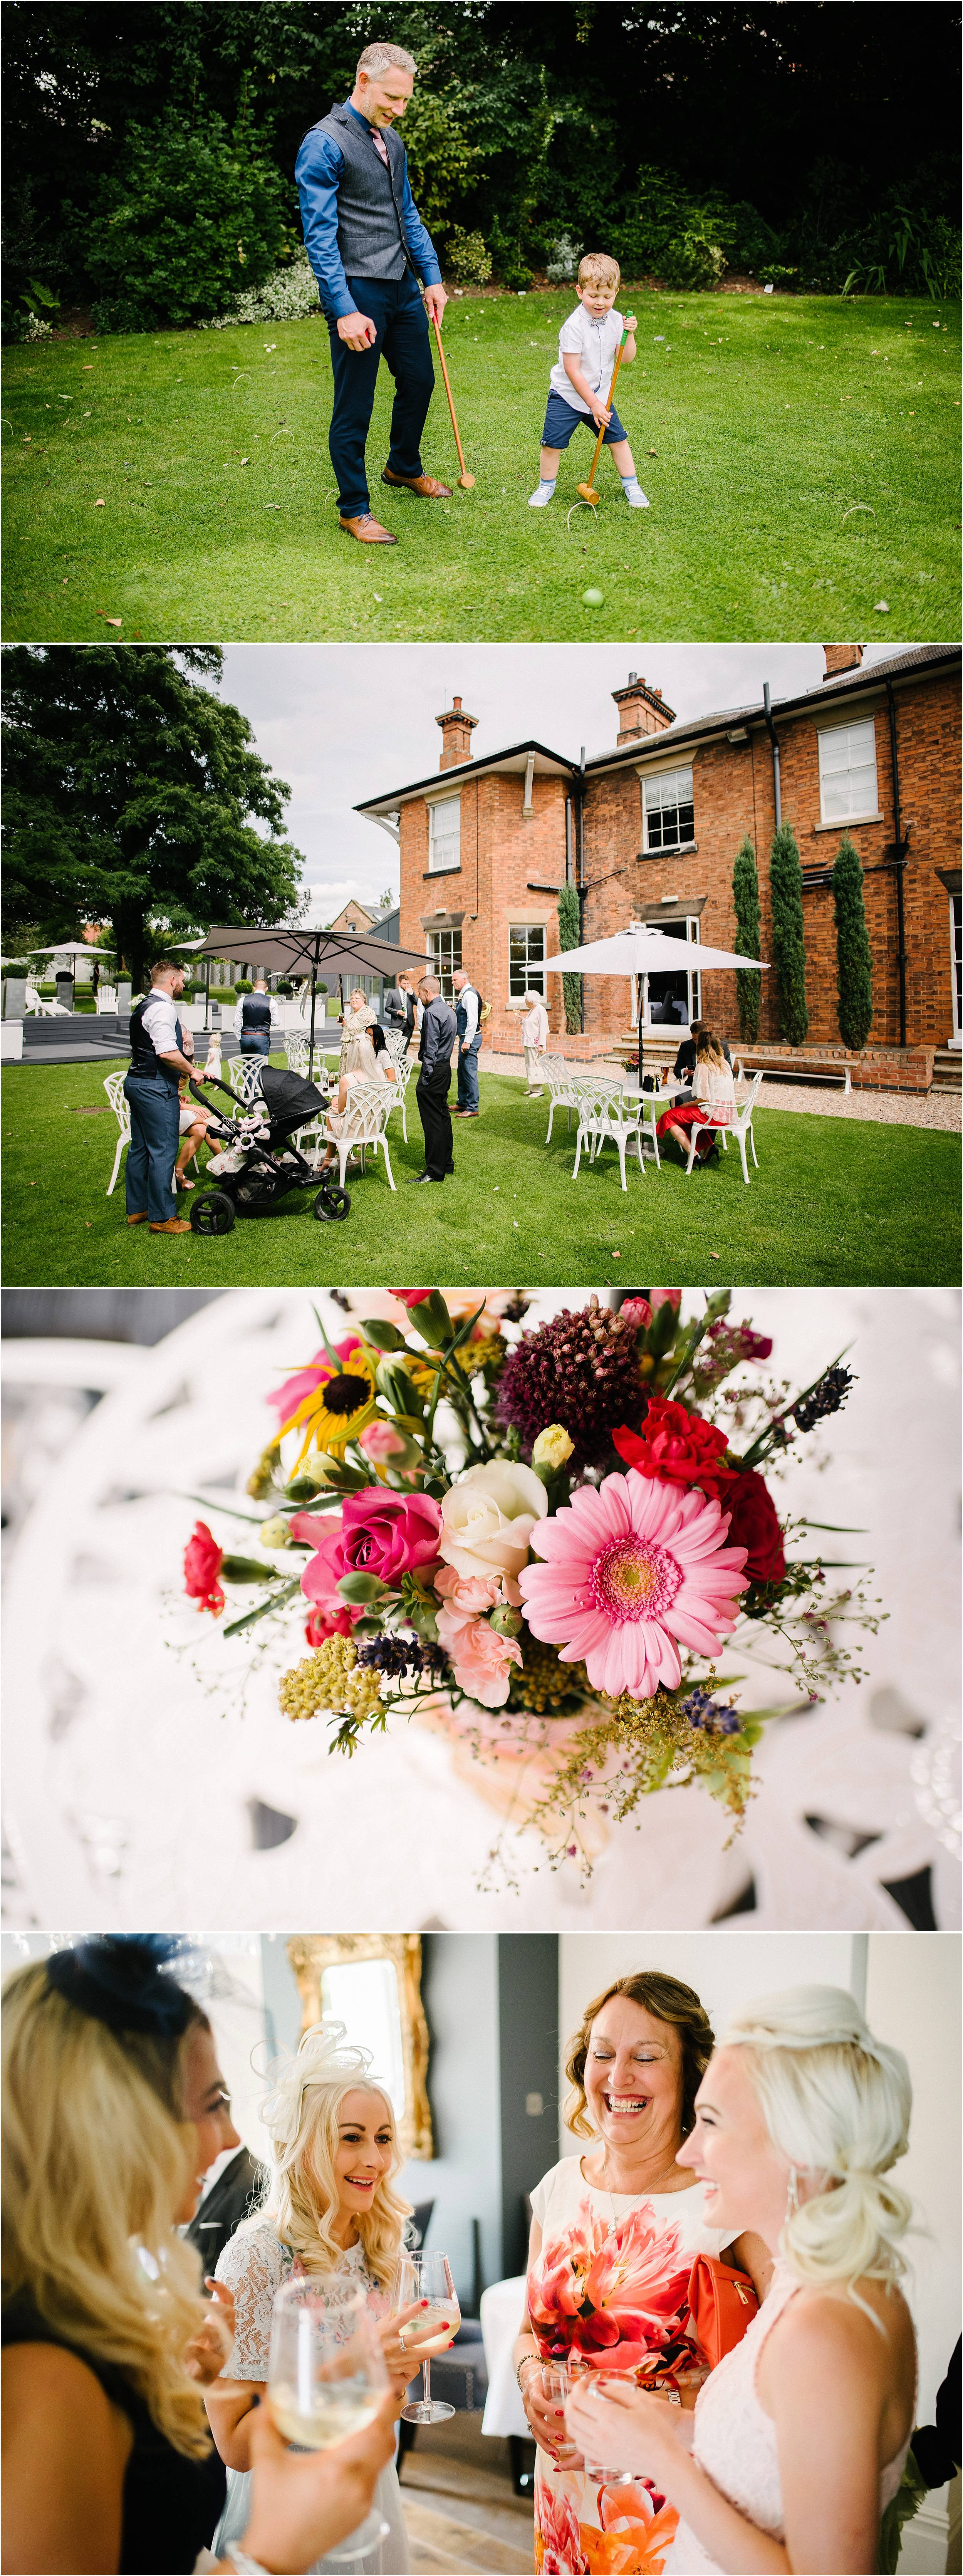 The Old Vicarage Boutique Wedding Photographer_0040.jpg